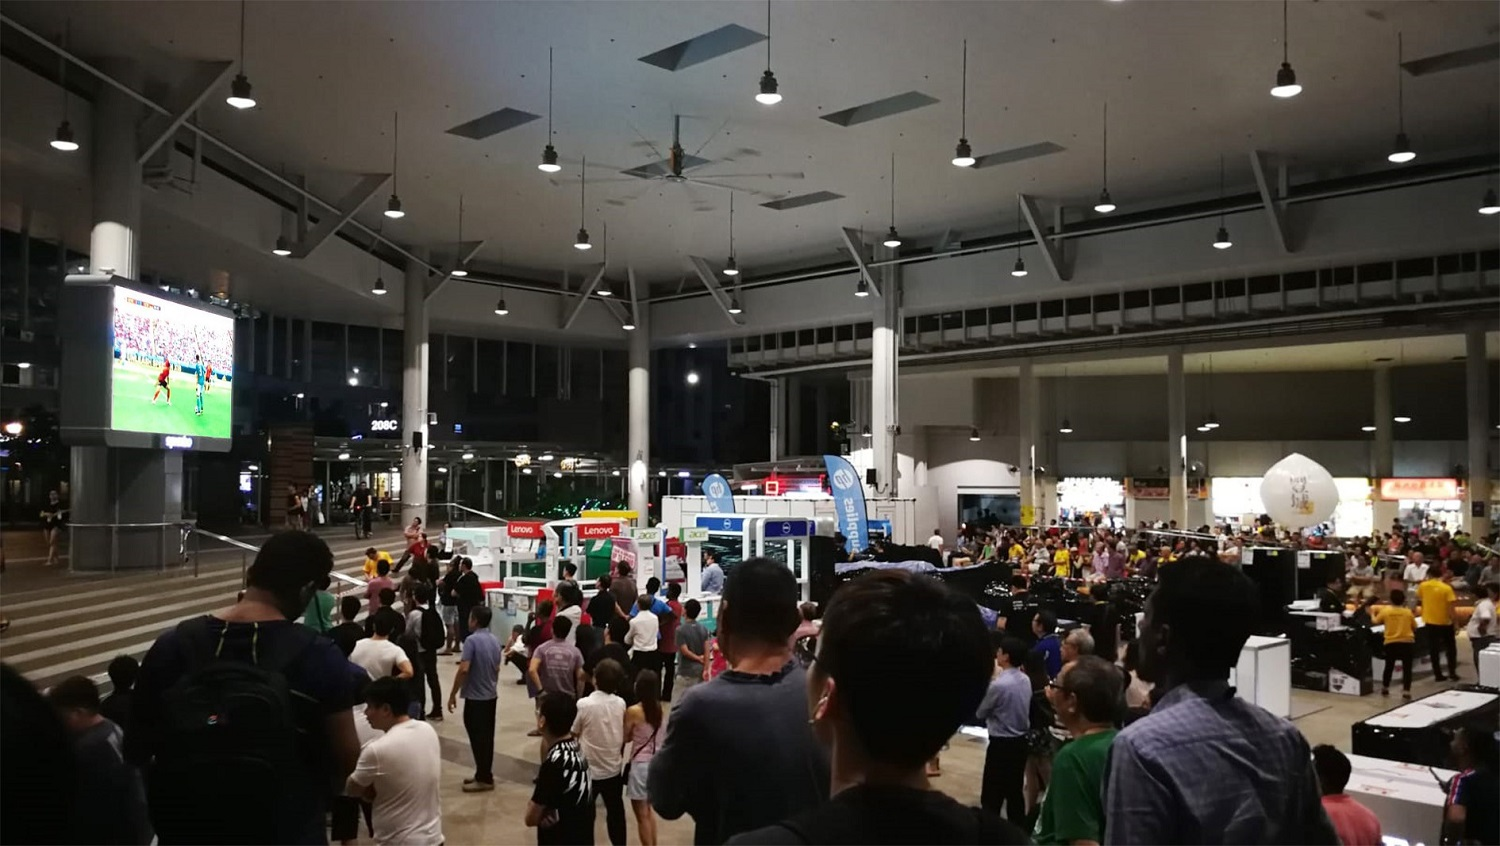 Free 'live' screening of World Cup matches at Bedok Town Square -SPH